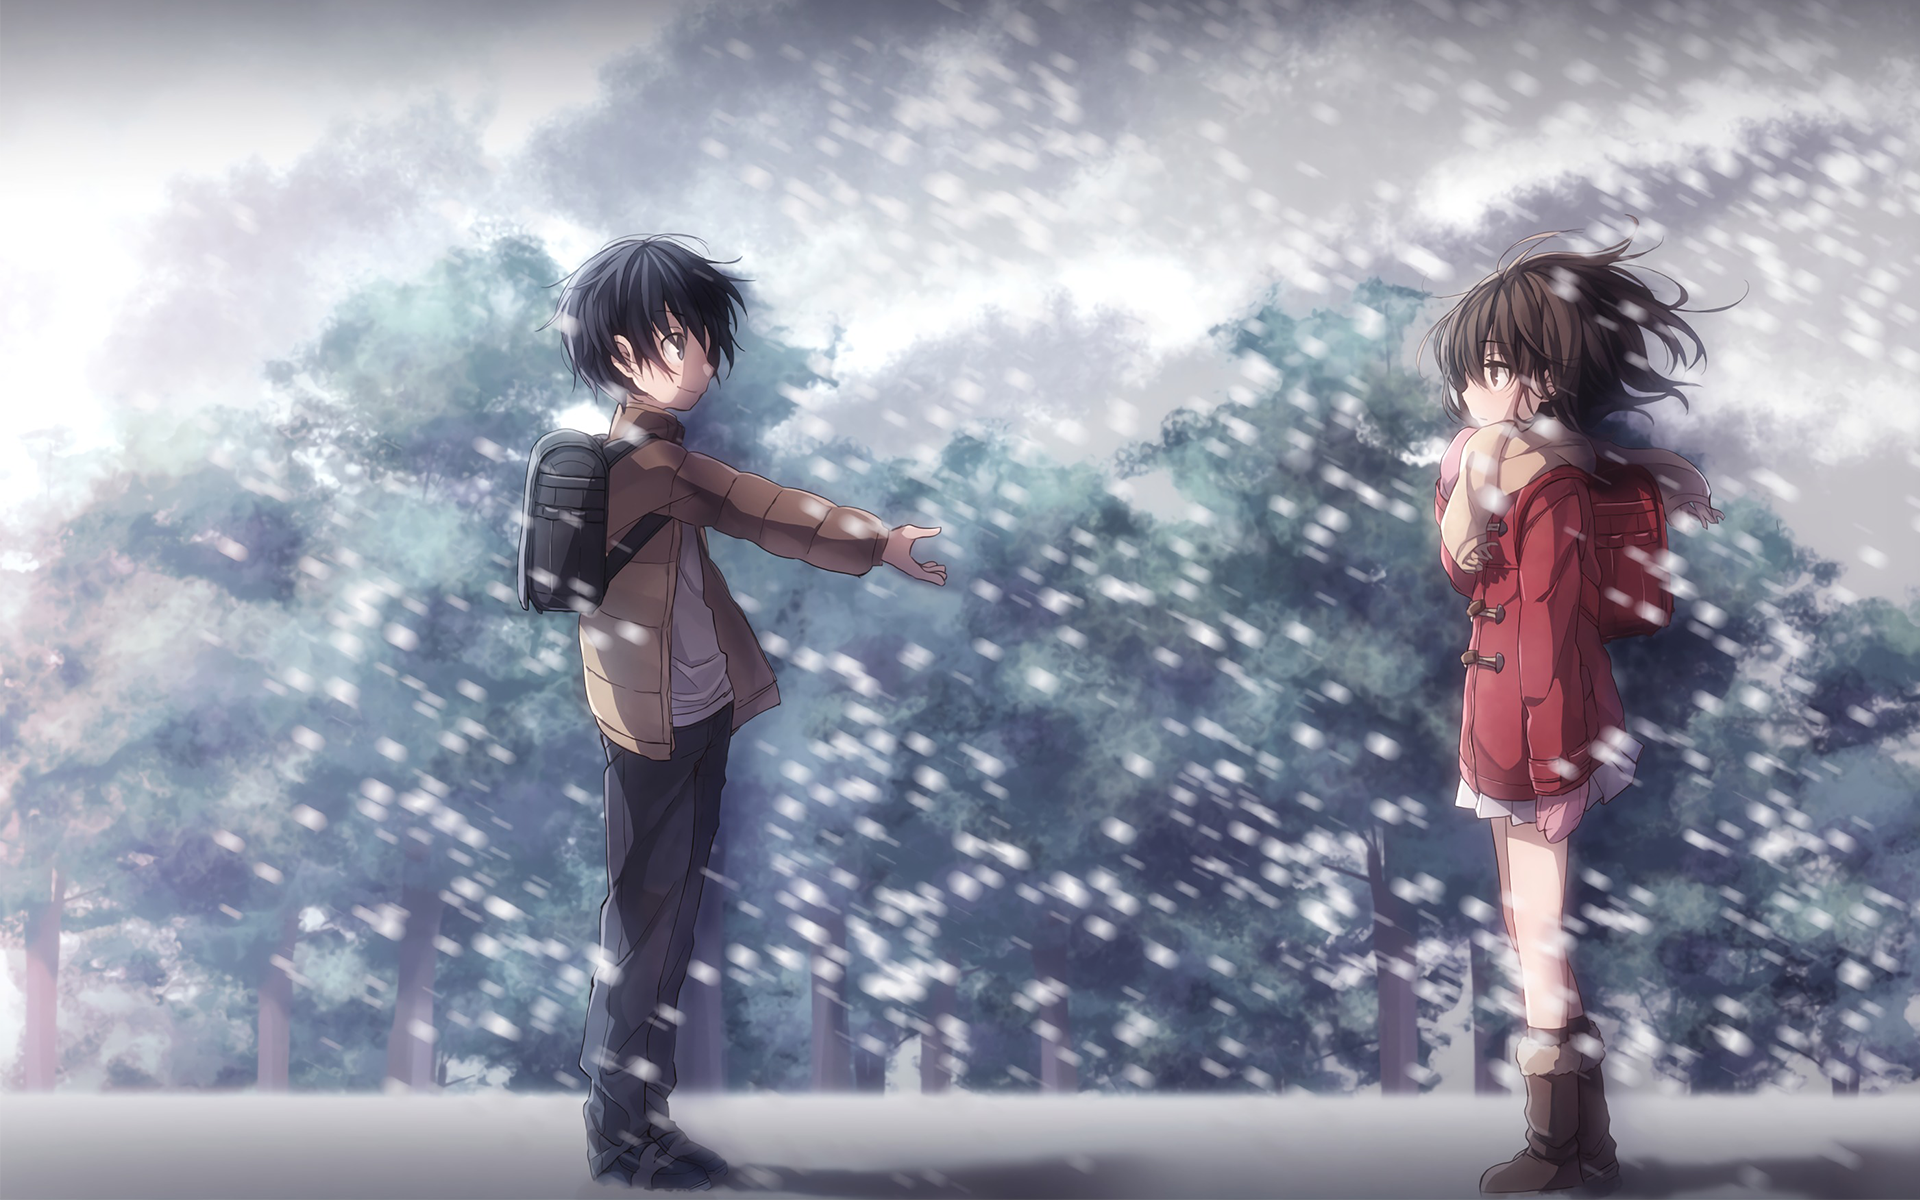 Erased Computer Wallpapers Desktop Backgrounds 1920x1200 Id 697276 Anime Aesthetic Anime Anime Images